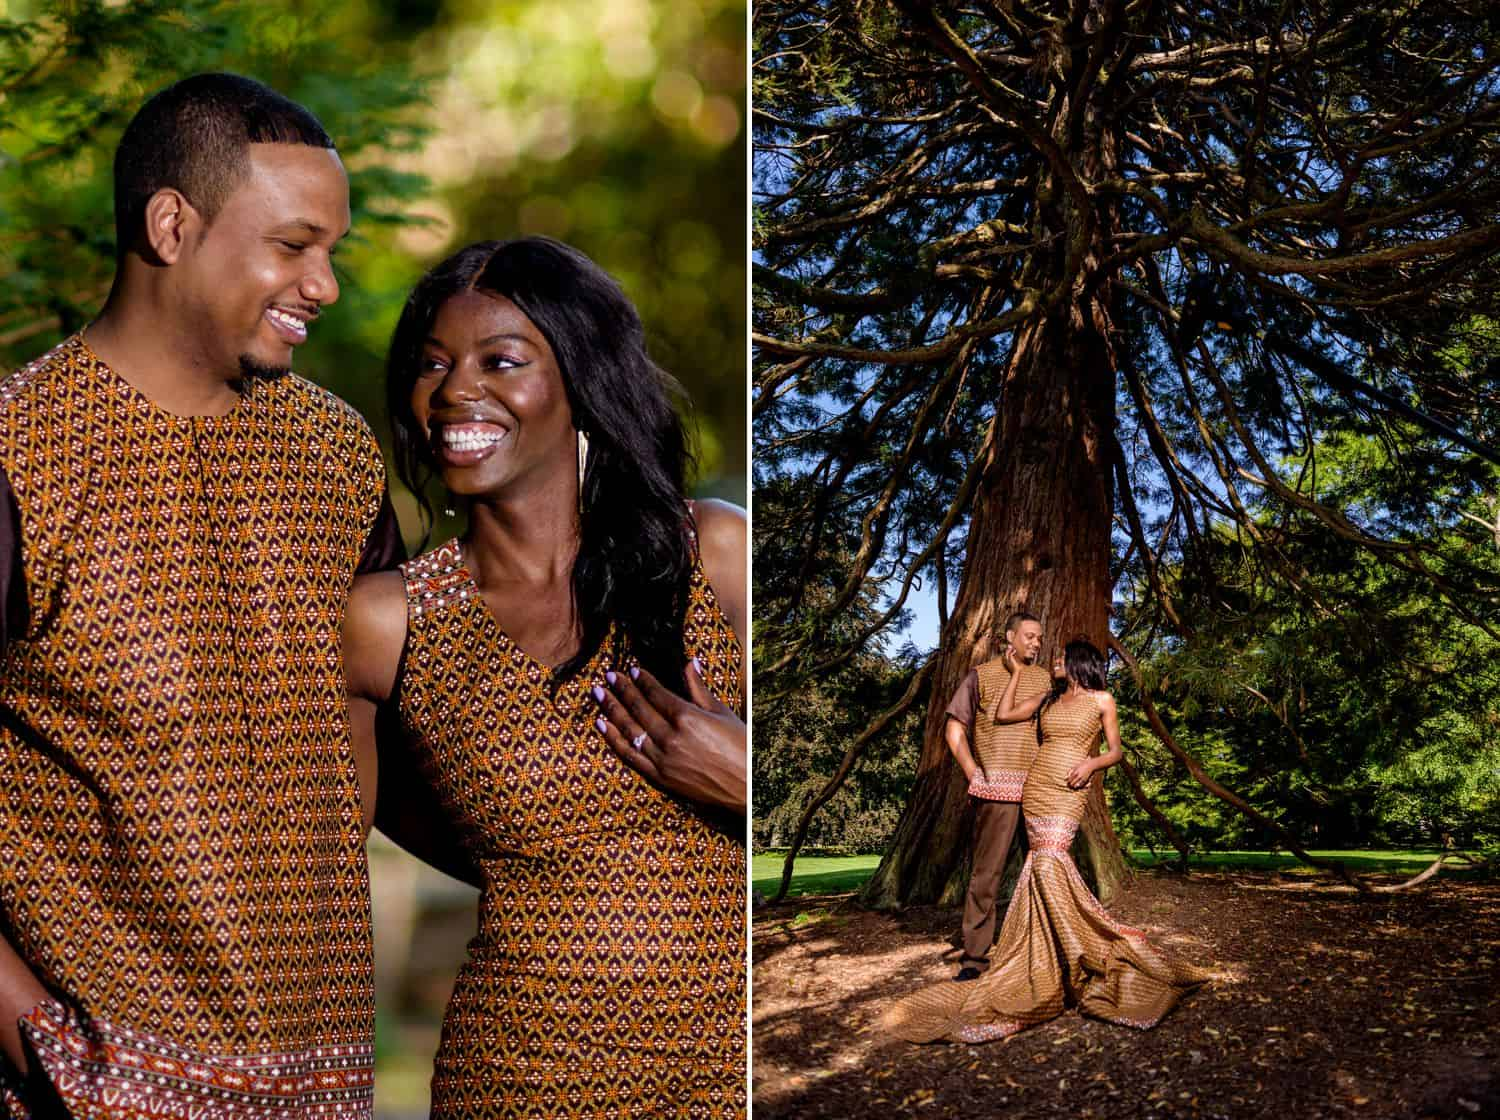 A Black couple poses in traditional African attire in front of a massive tree